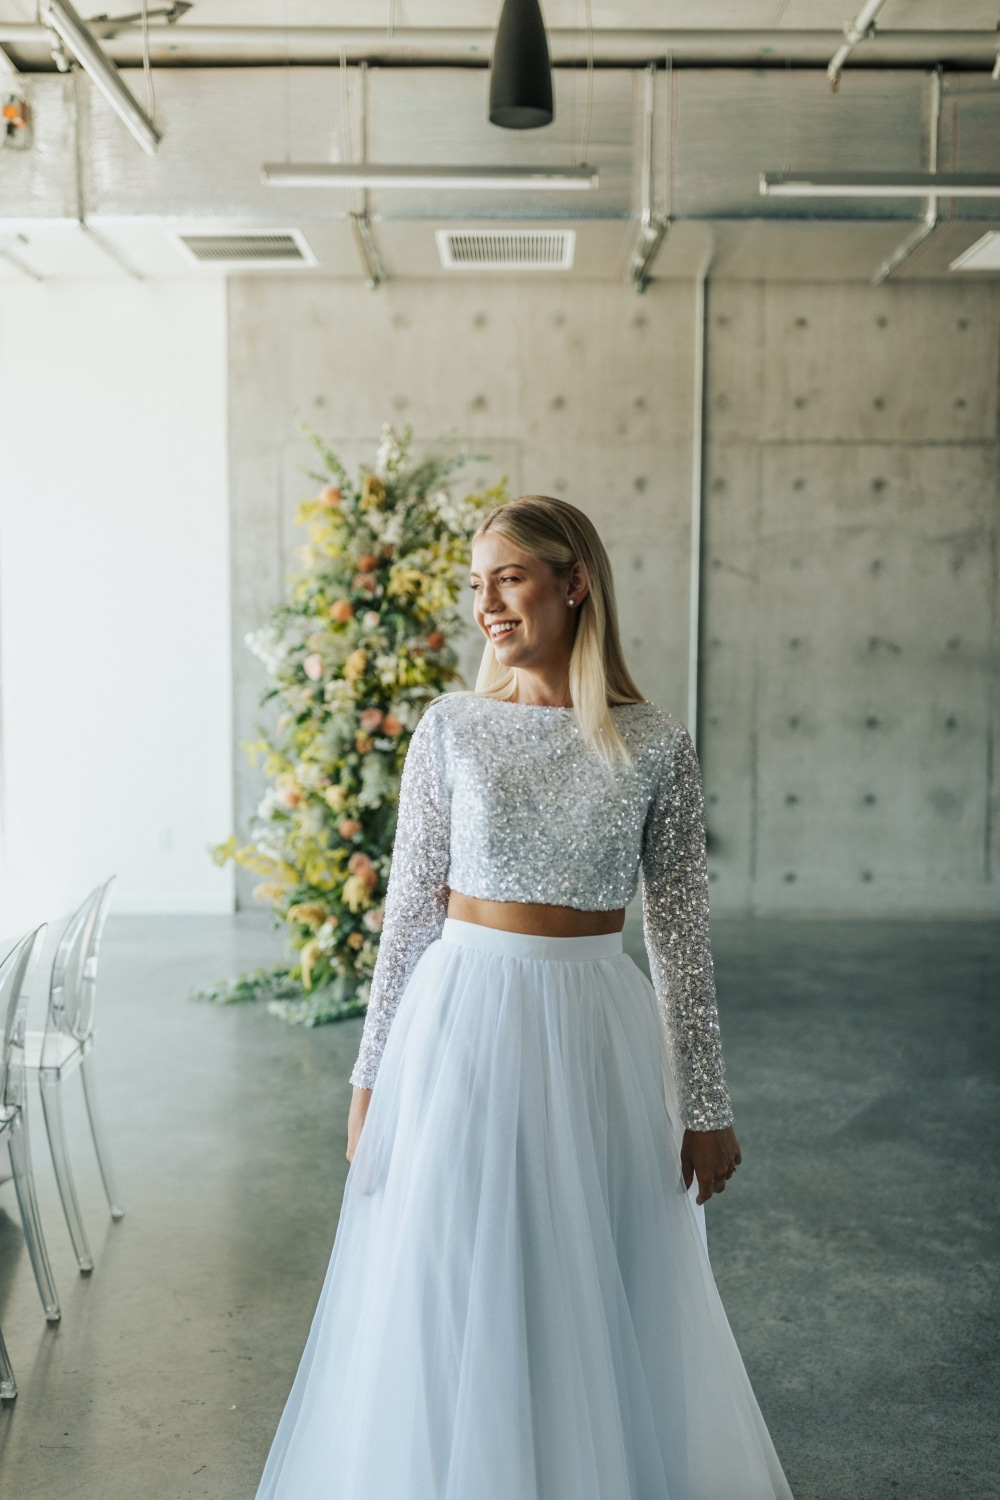 two-piece wedding gown with bedazzled top with rustic background